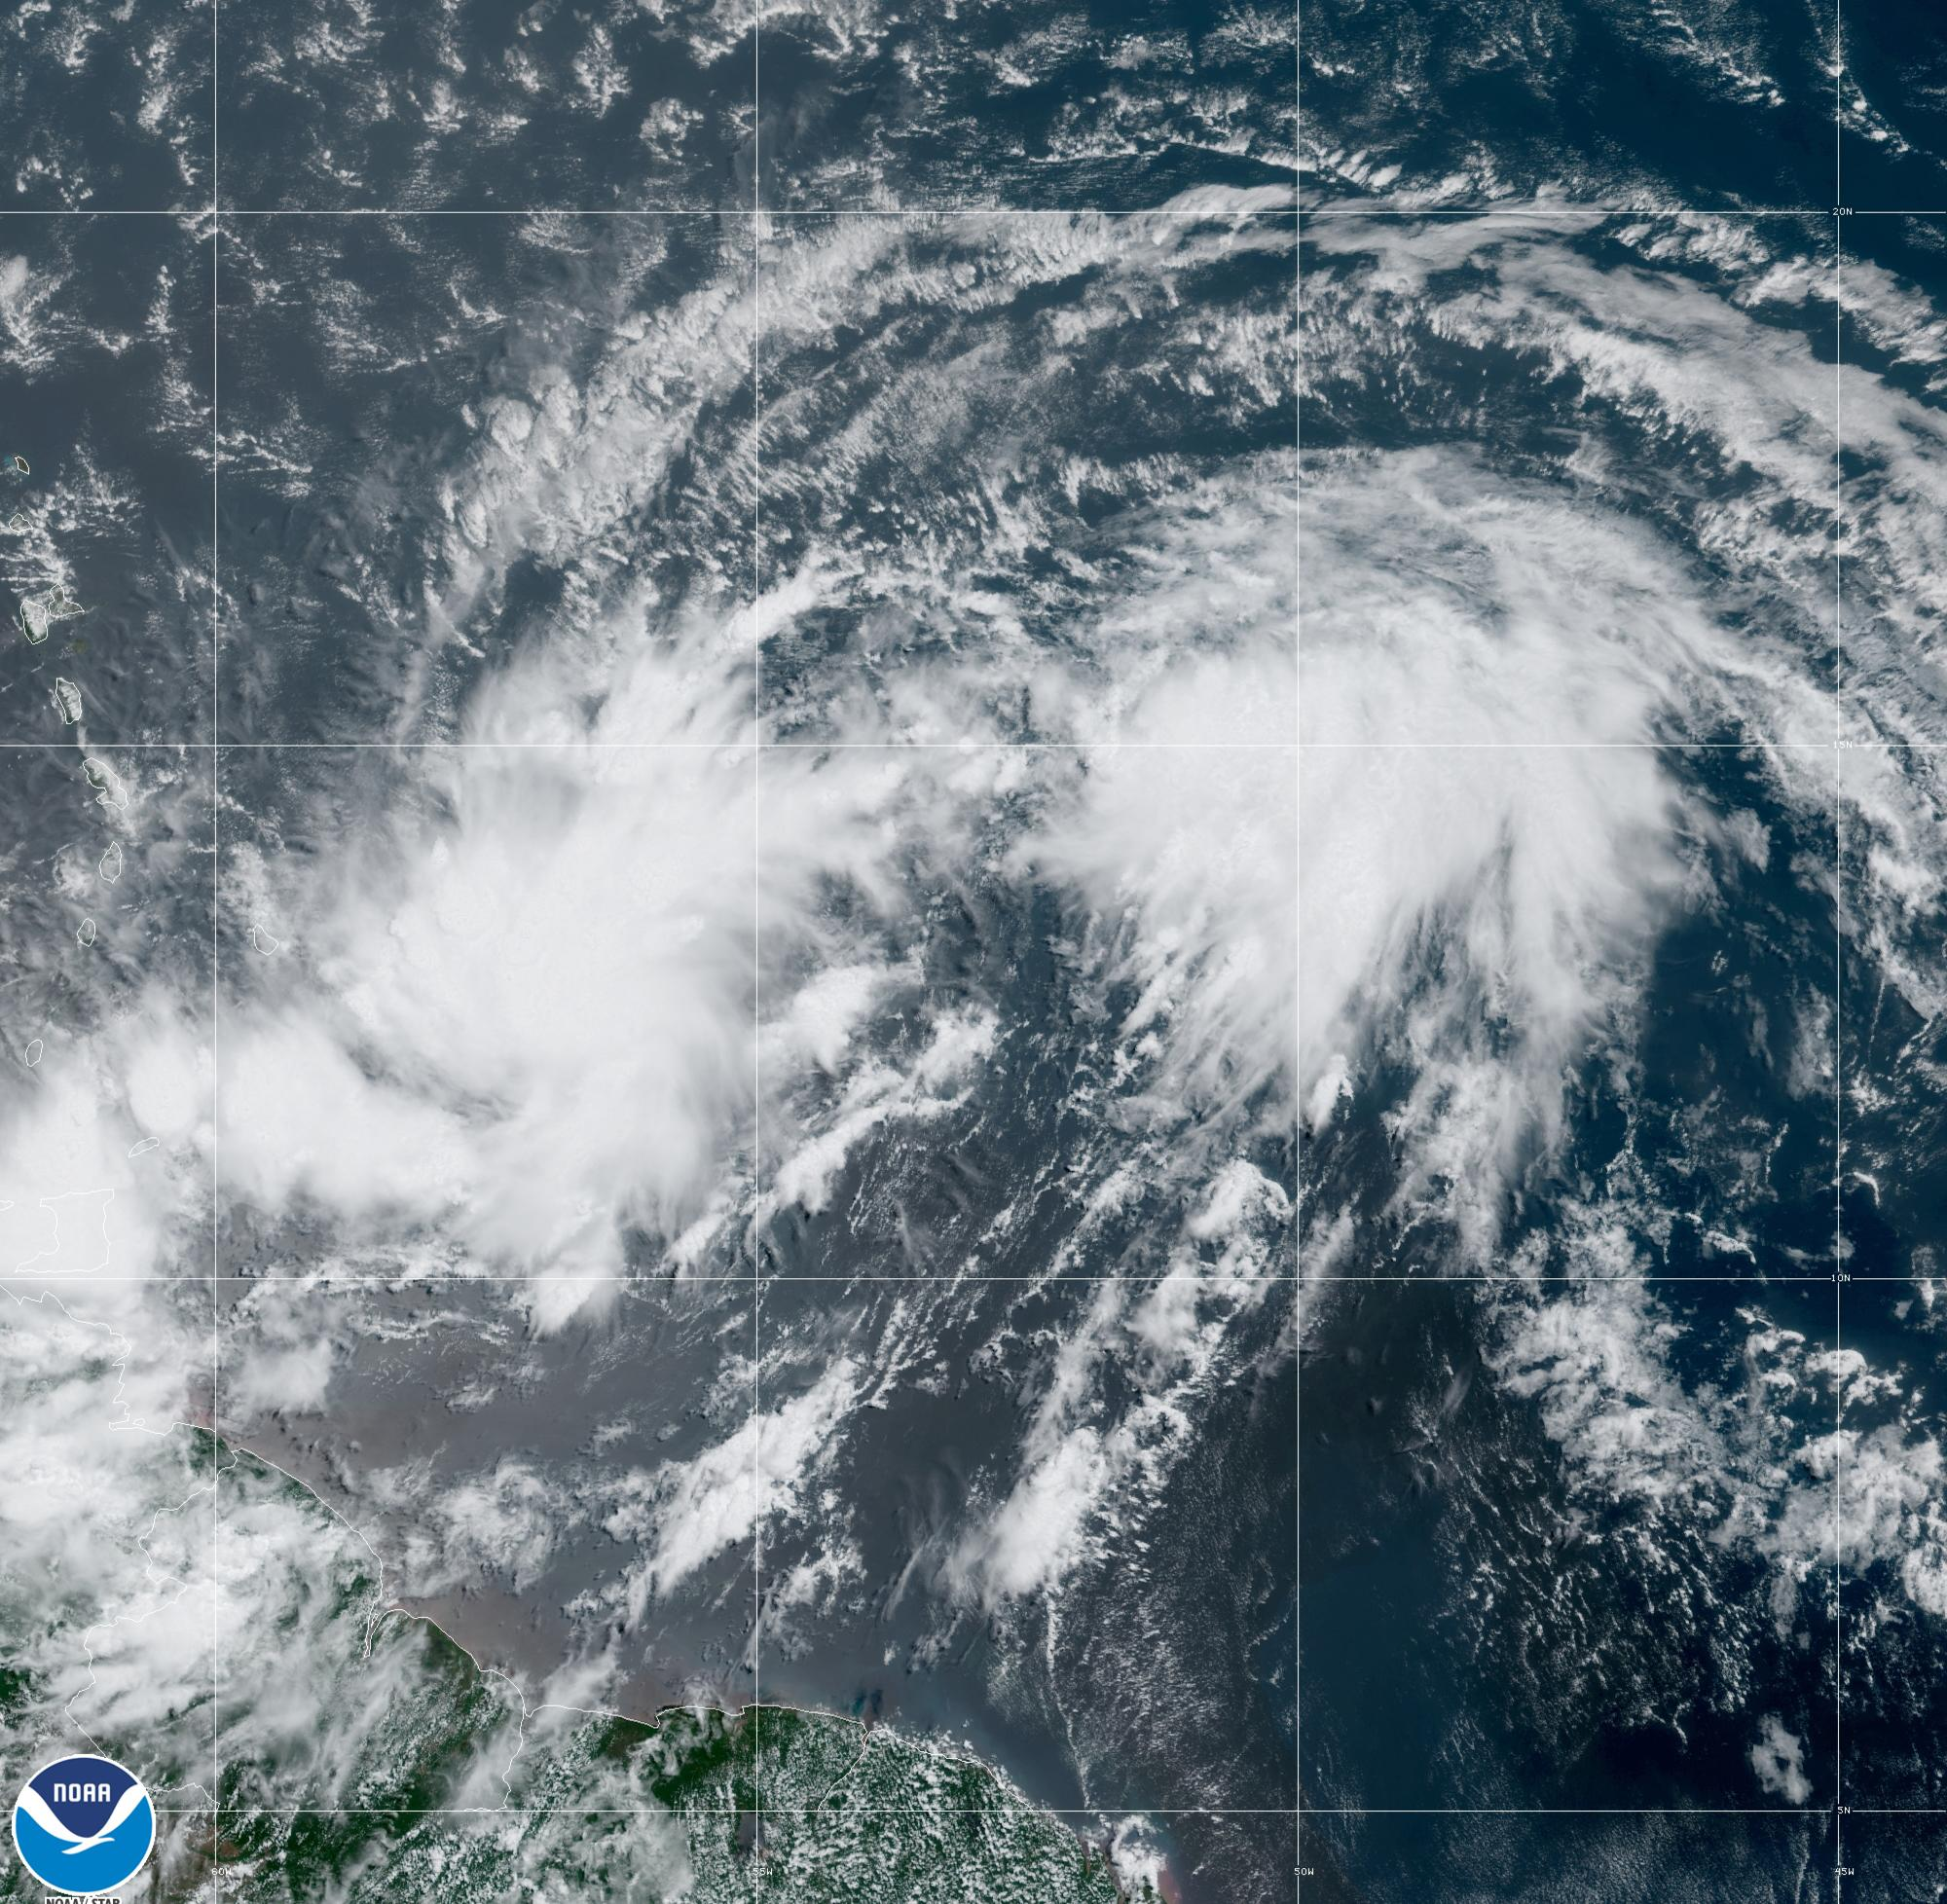 Tropical storm warning issued for Puerto Rico as cyclone approaches